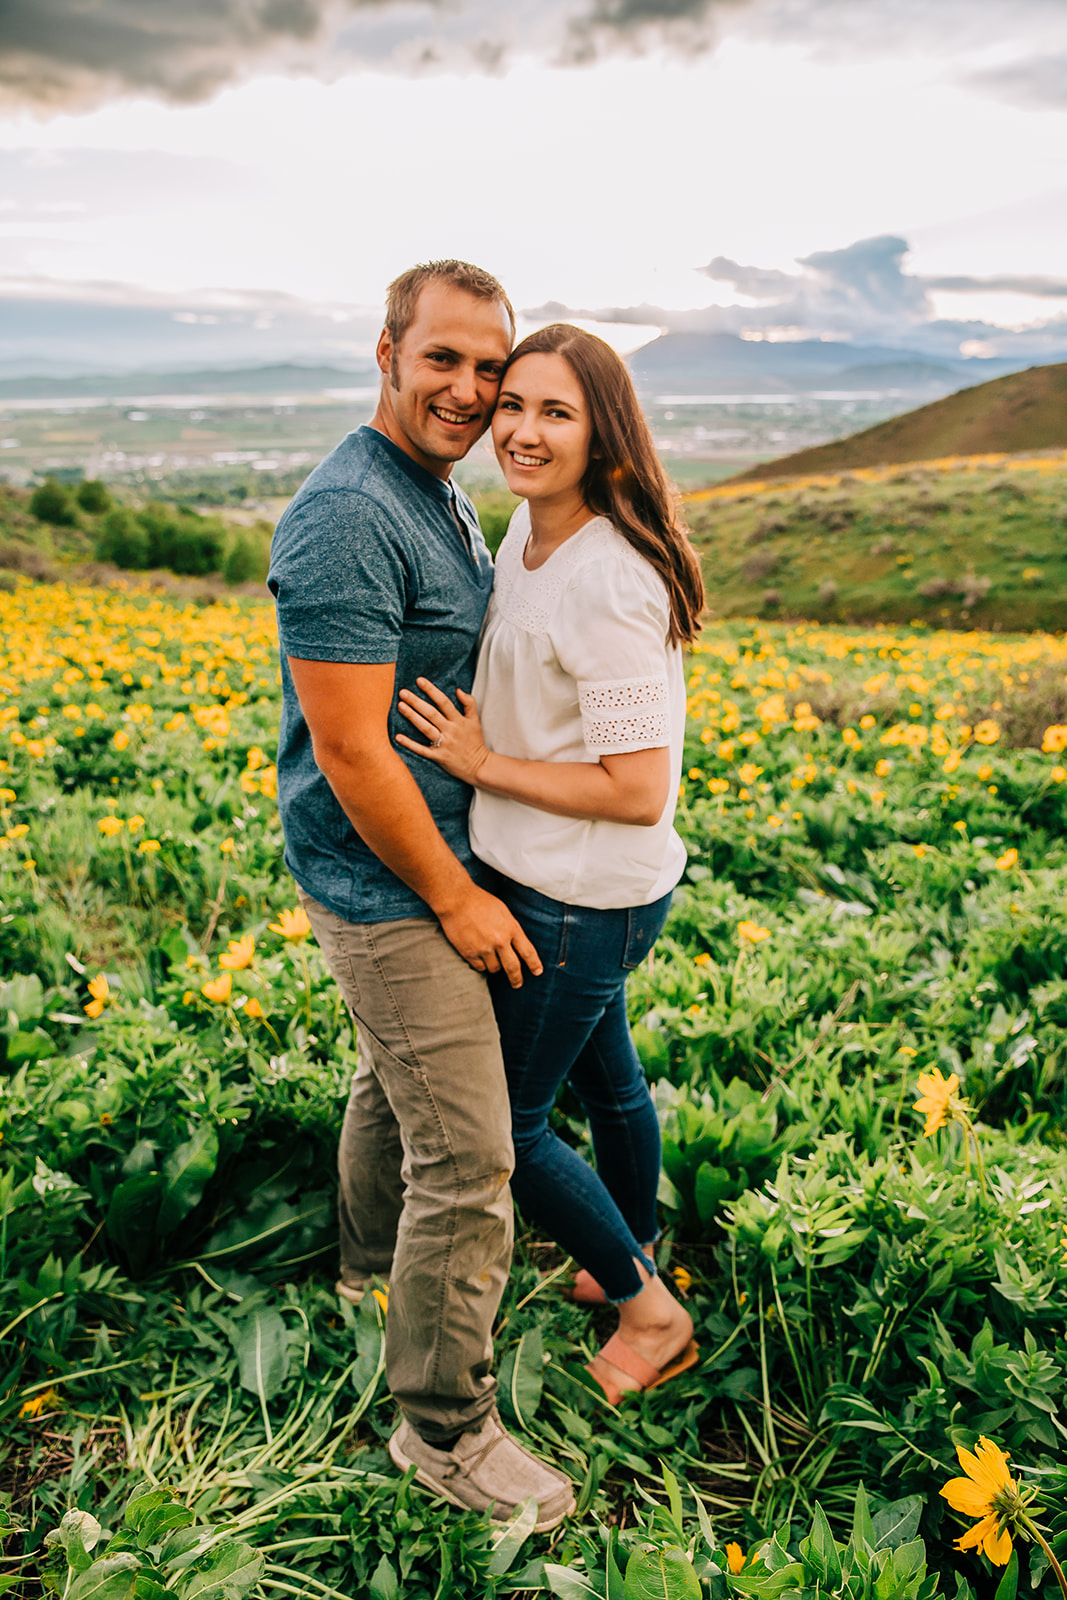 Family pictures by a professional photographer. Husband and wife together. Mom and dad family photos. Beautiful spring pictures. Mountain photography. #Familypcitures #springtimephotos #momanddadphotos #happyfamily #happycouples #happyfamily #mountainpictures #mountainfamilyphotography #husbandandwife #springtimephotos